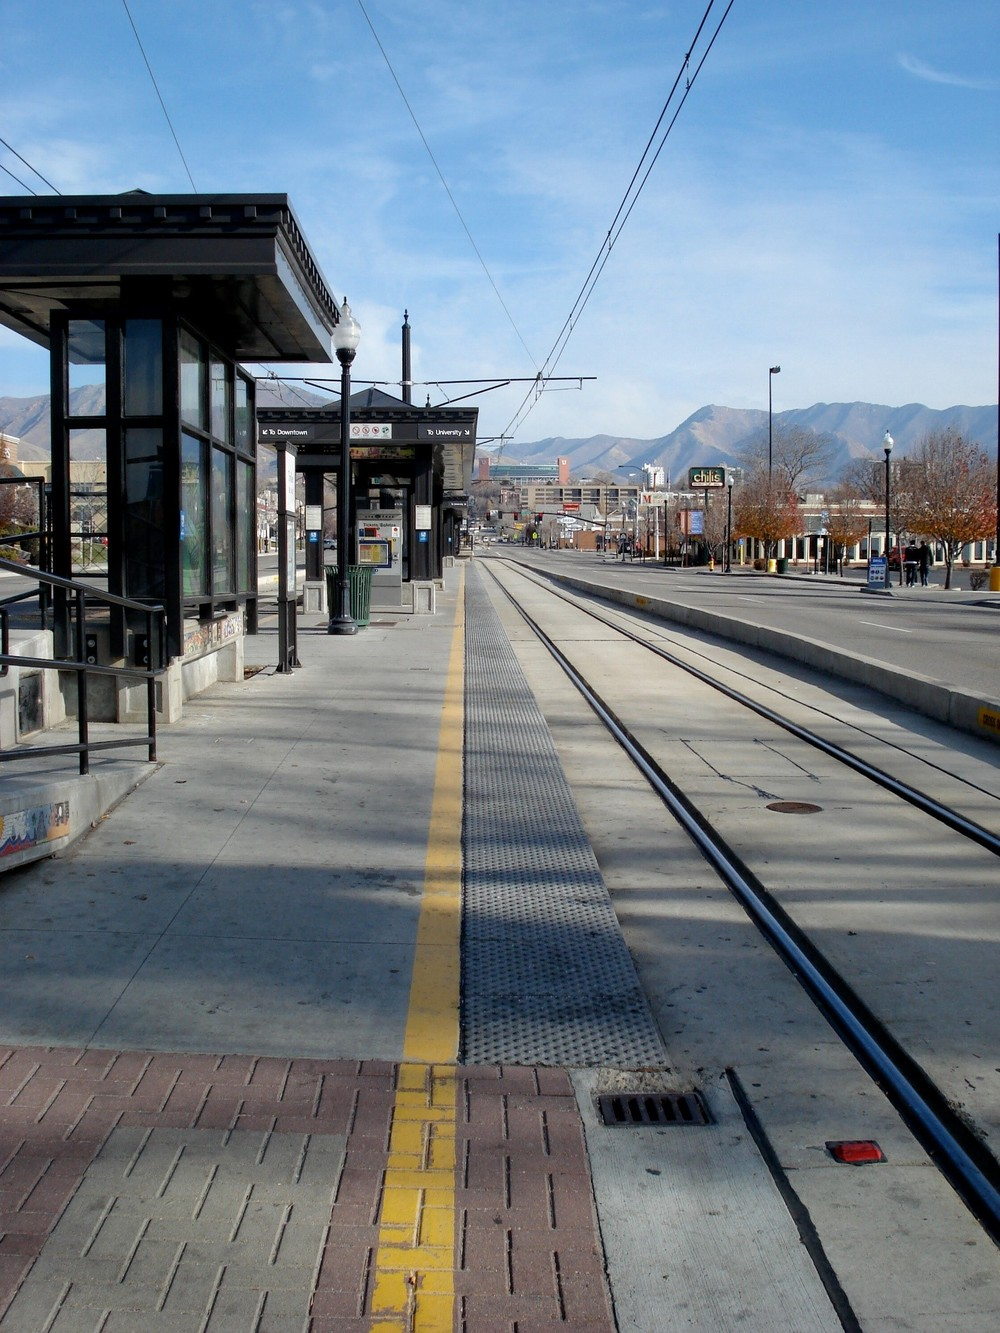 Trolley Station – Salt Lake City, UT